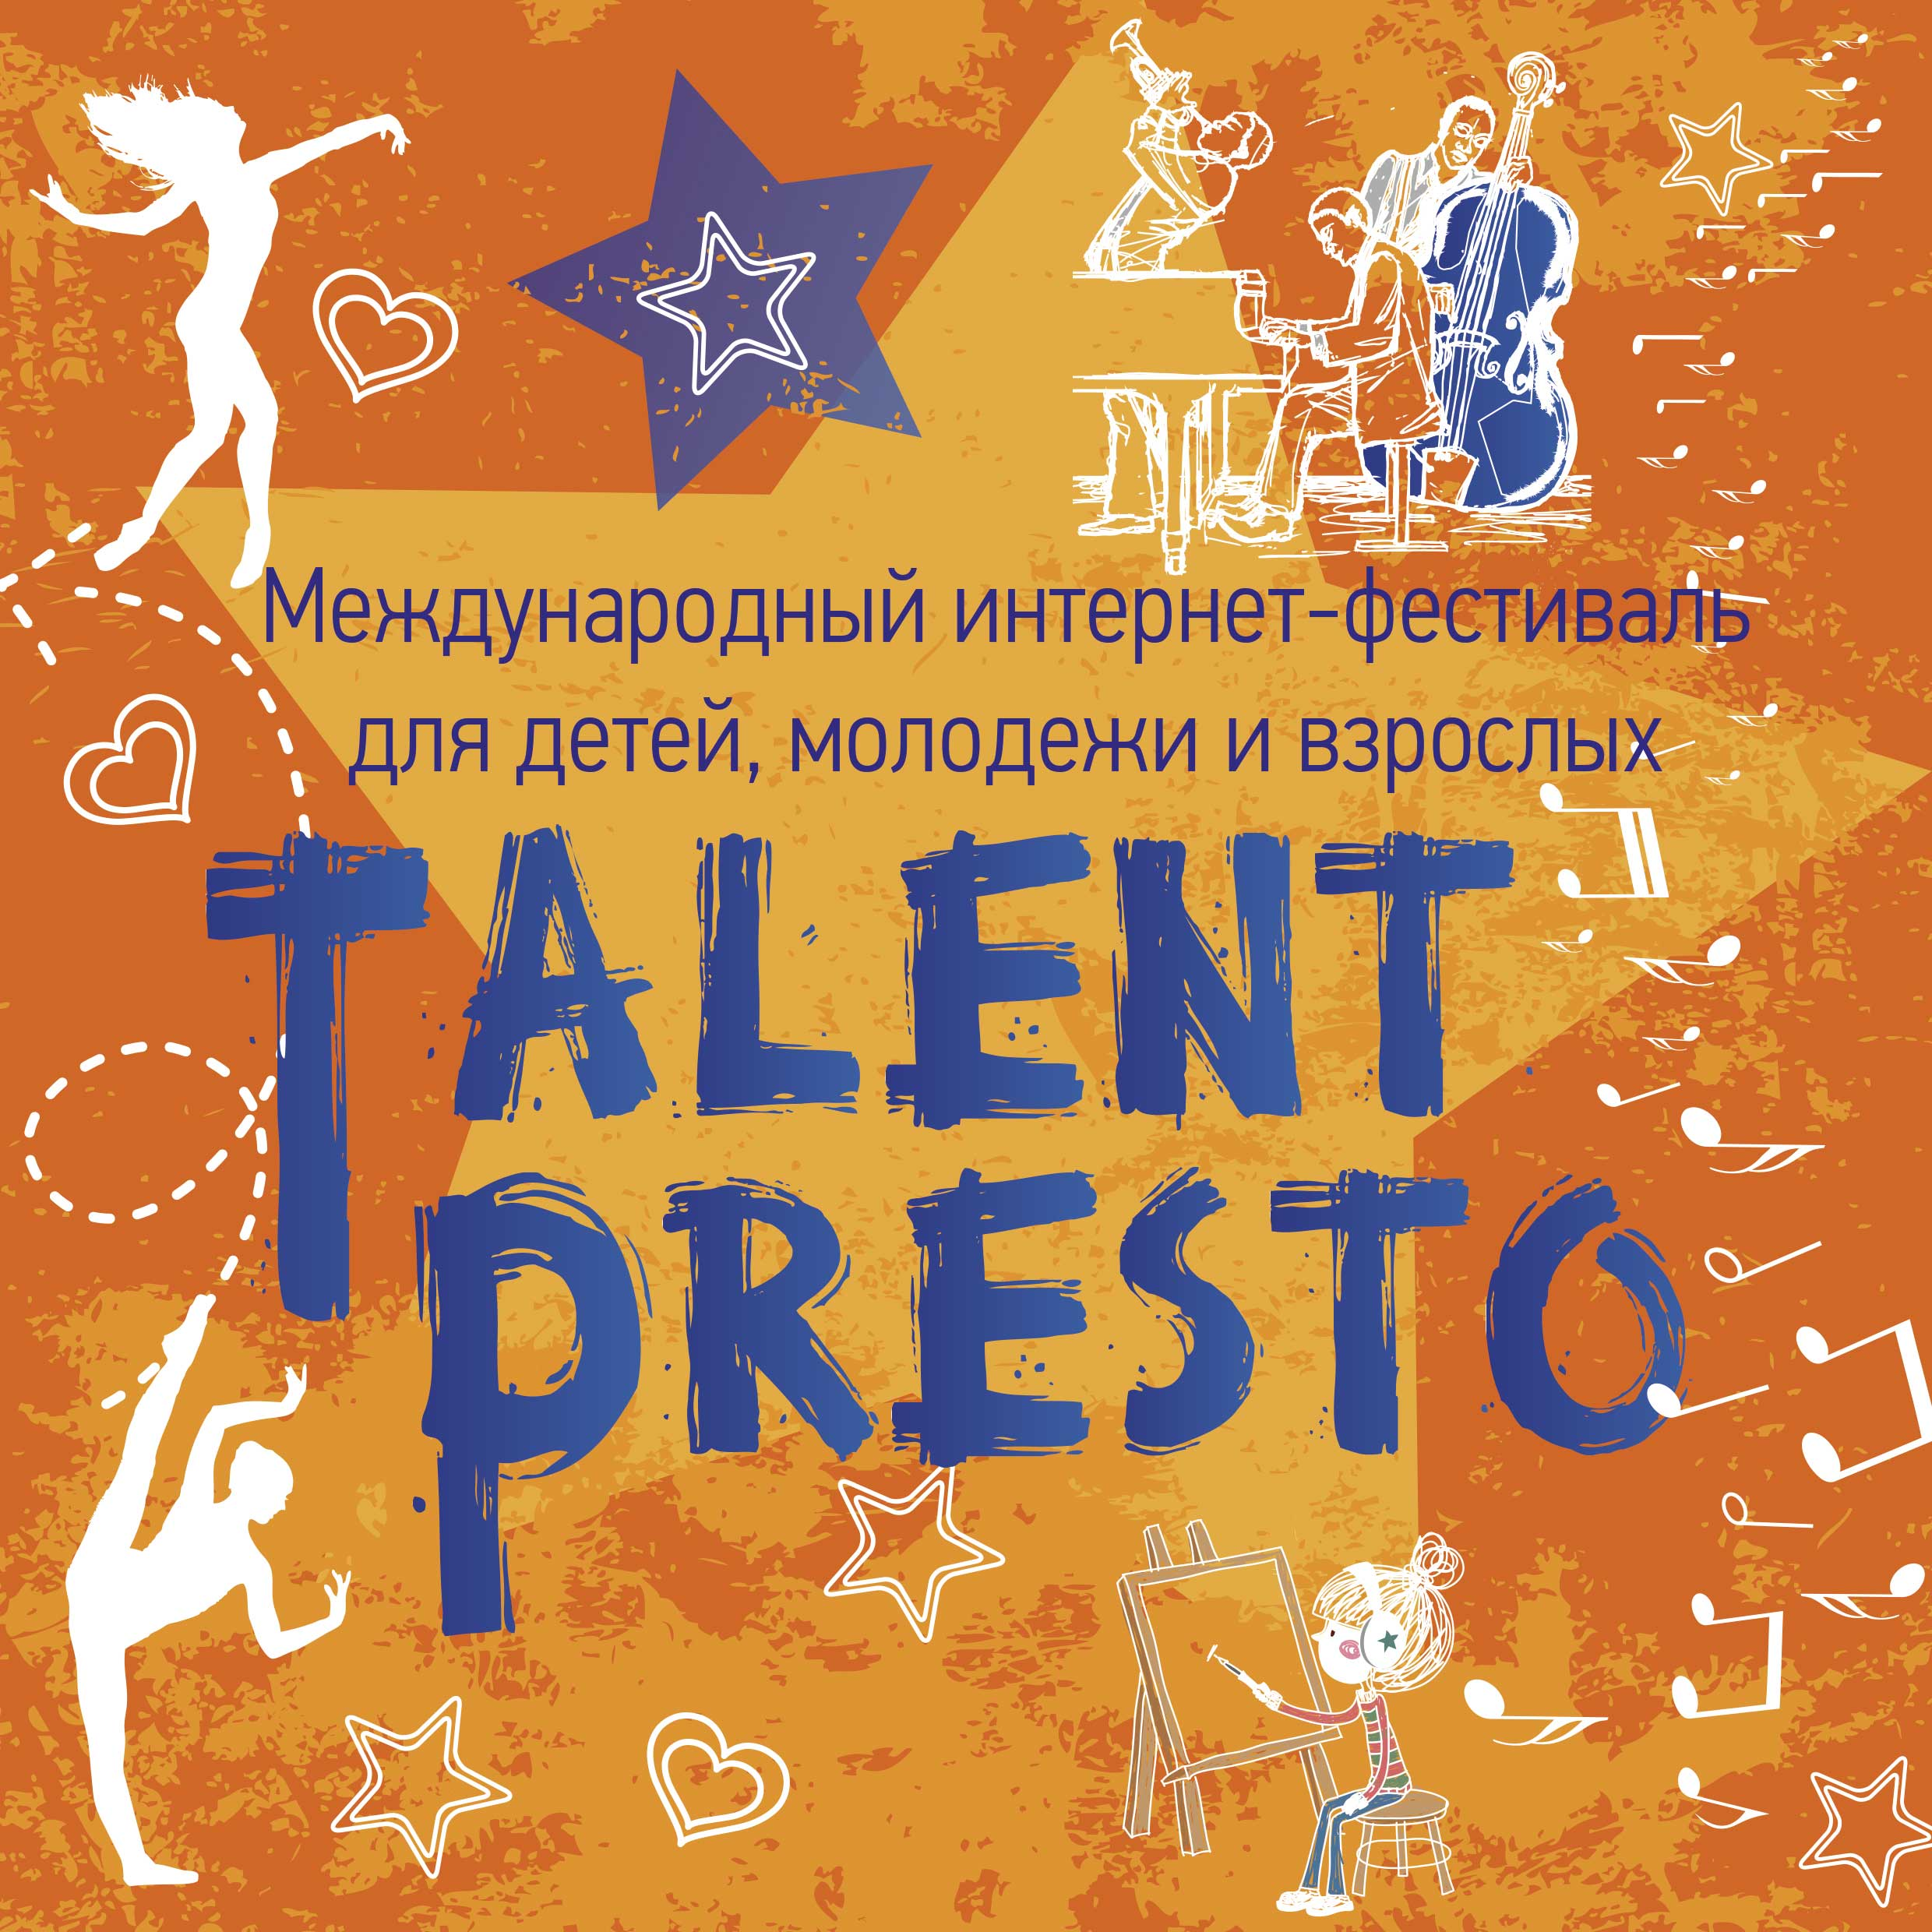 Talent_PRESTO_logo_site.jpg